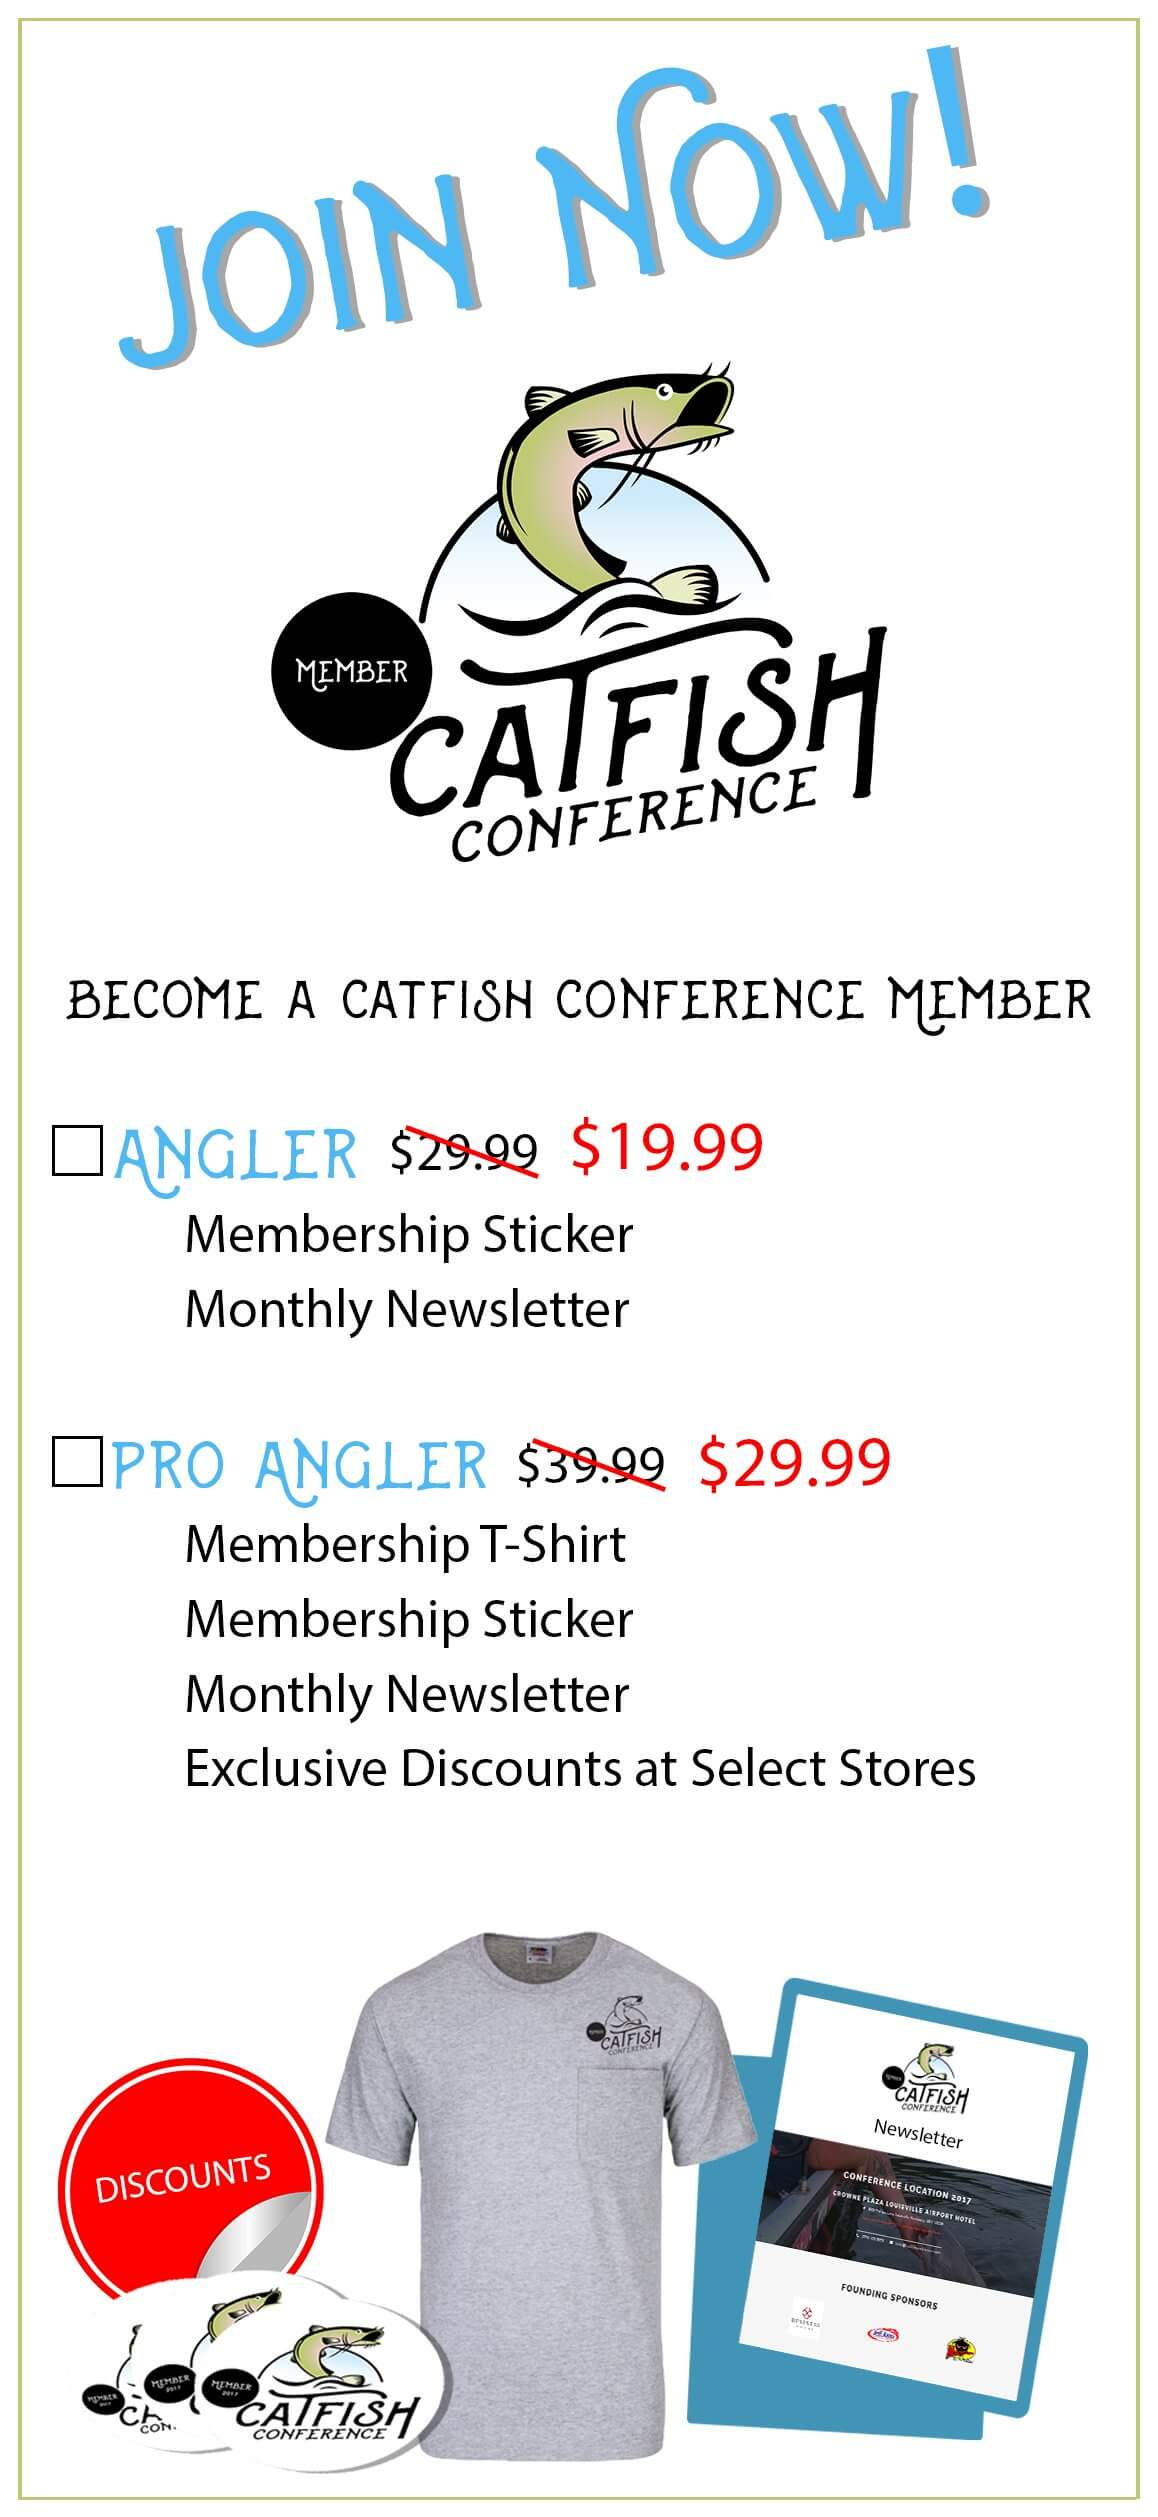 Catfish Conference Pro Angler Membership Catfish Membership Rack Card Front V 4